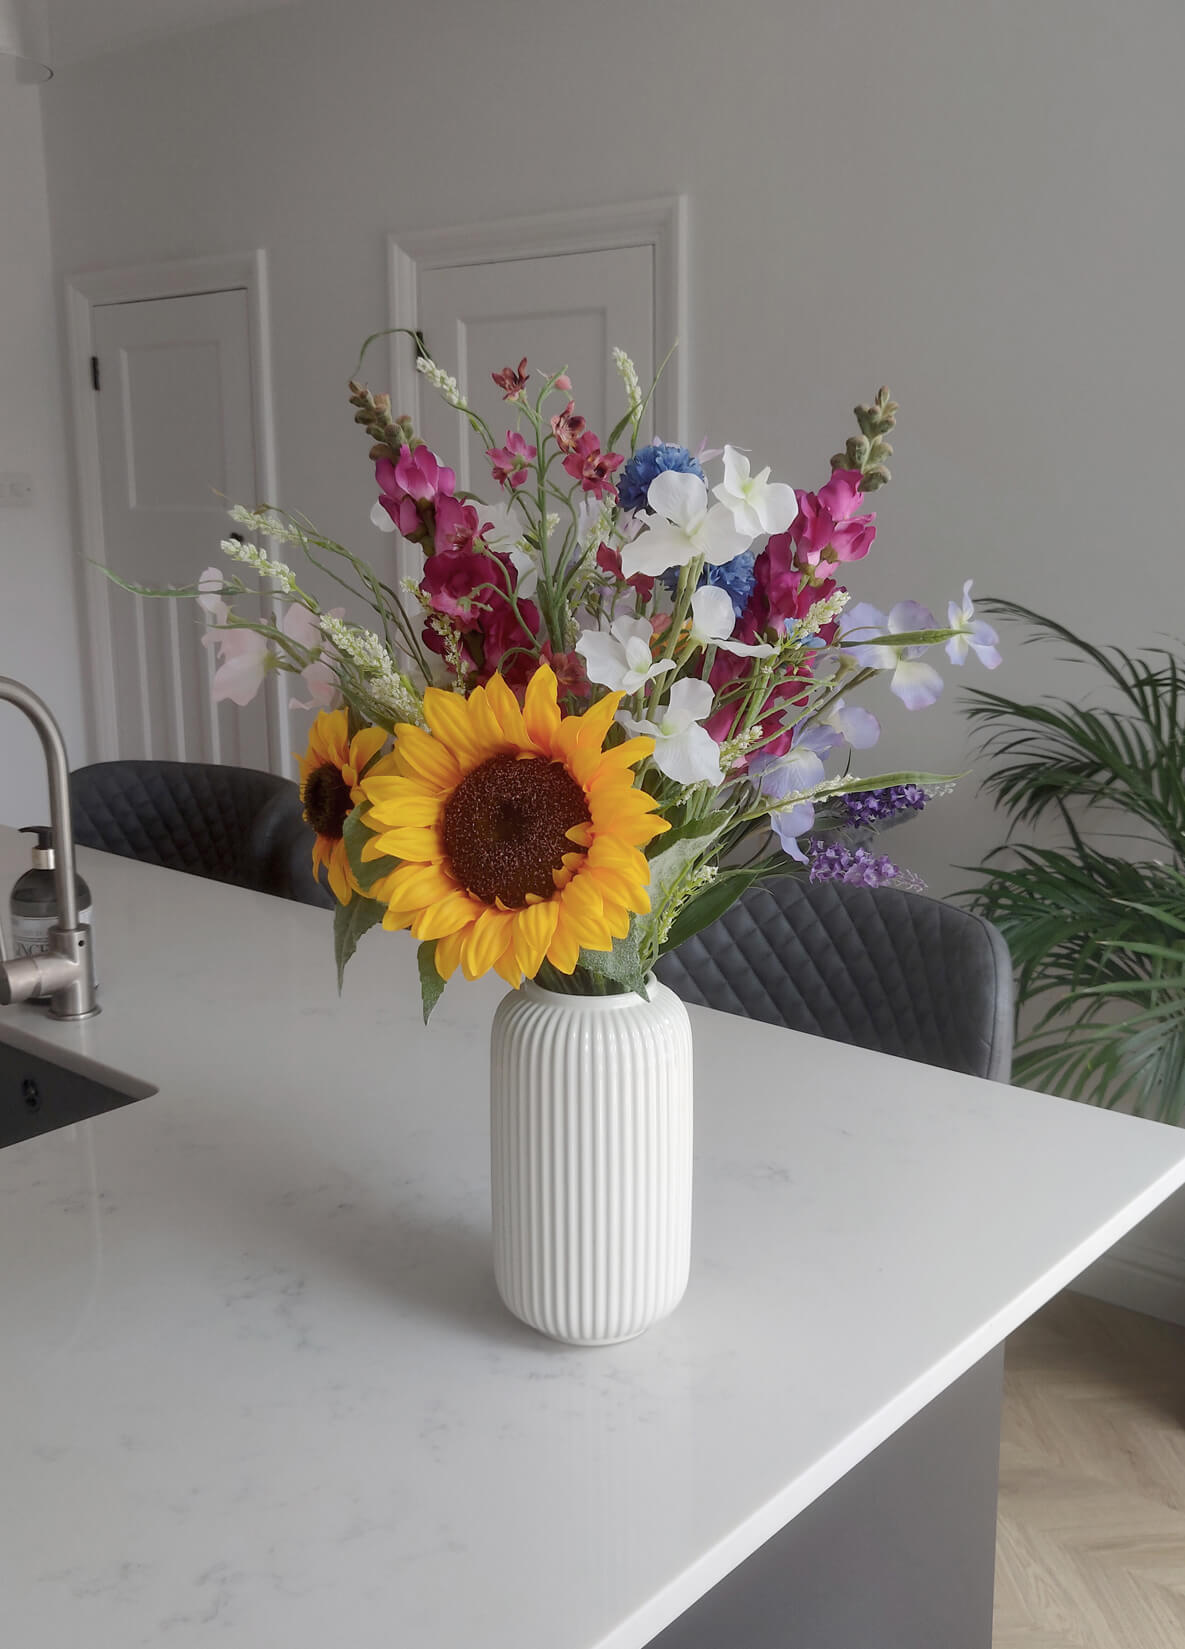 A bouquet of brightly coloured flowers including sunflowers, in a vase in the kitchen.